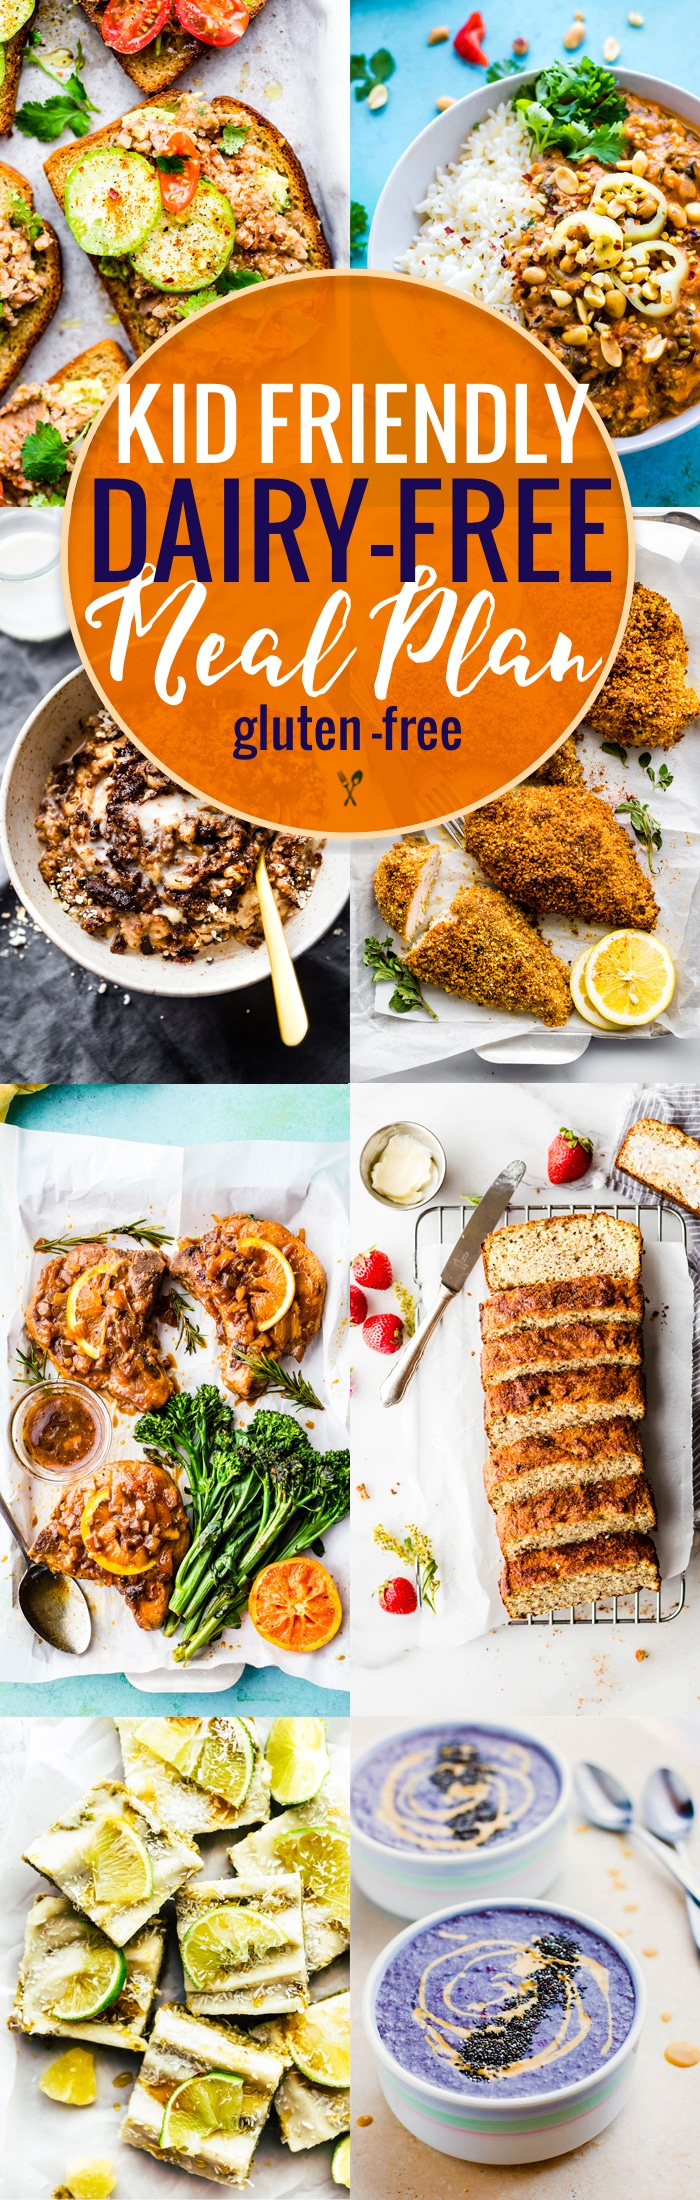 kid friendly dairy-free meal plan | cotter crunch - gluten-free recipes